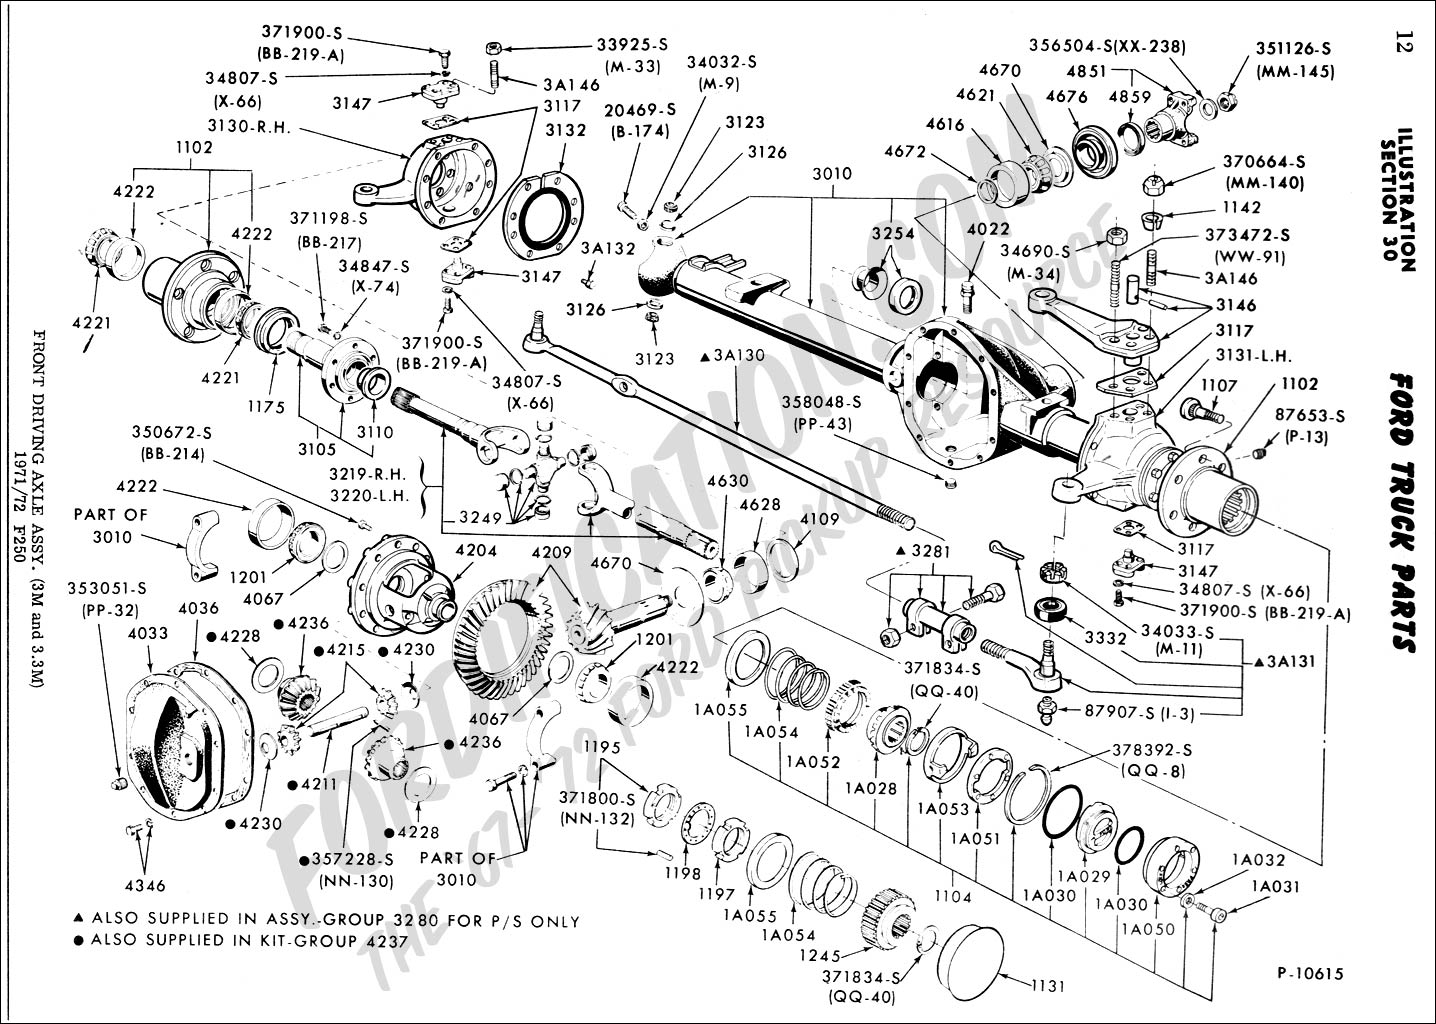 Ford Truck Technical Drawings And Schematics Section A Front 2006 F 250 Power Door Lock Wiring Diagram Rear Axle Assemblies Suspensions